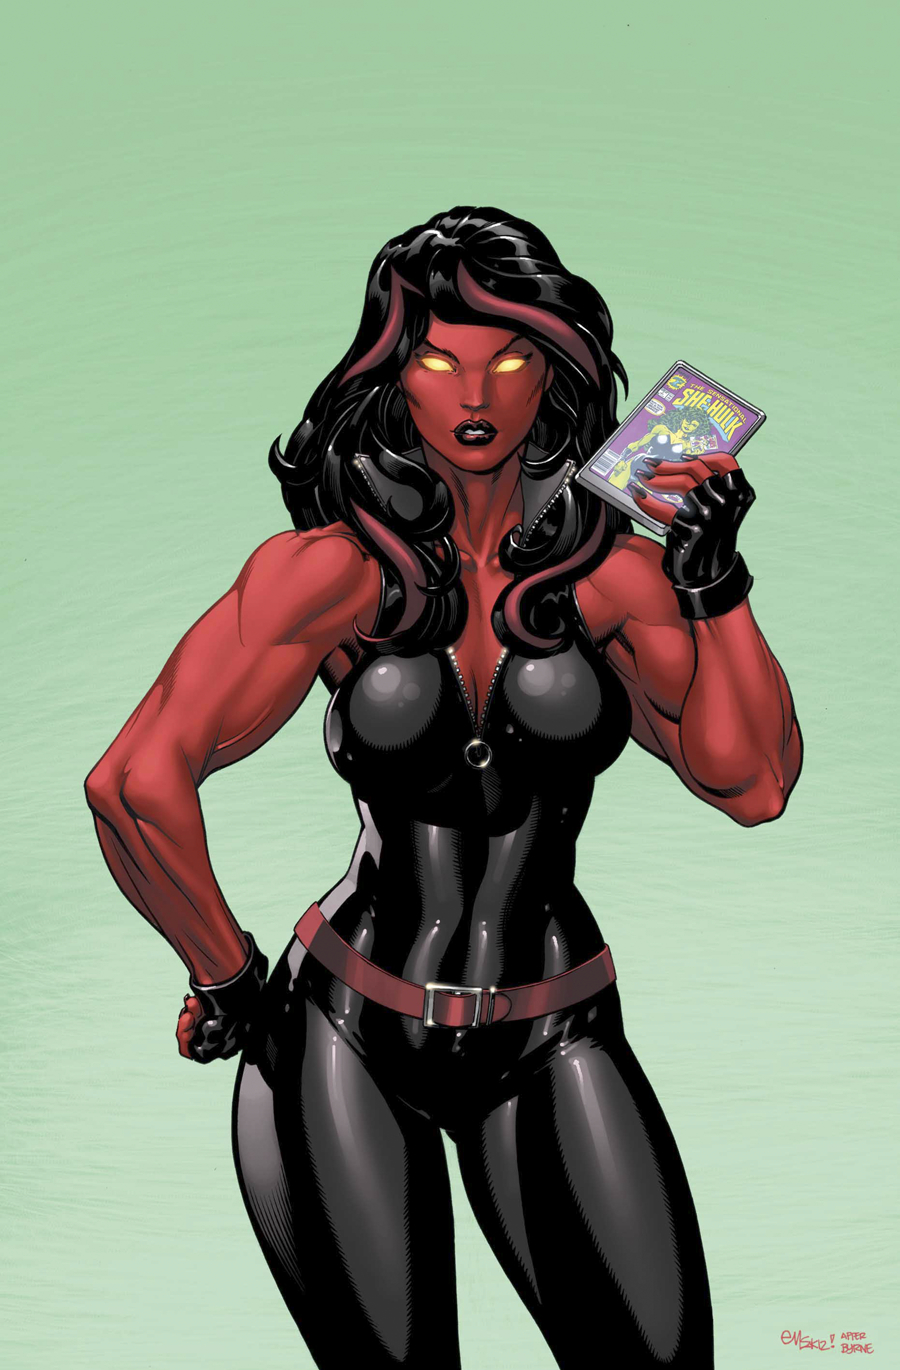 RED SHE-HULK #58 NOW